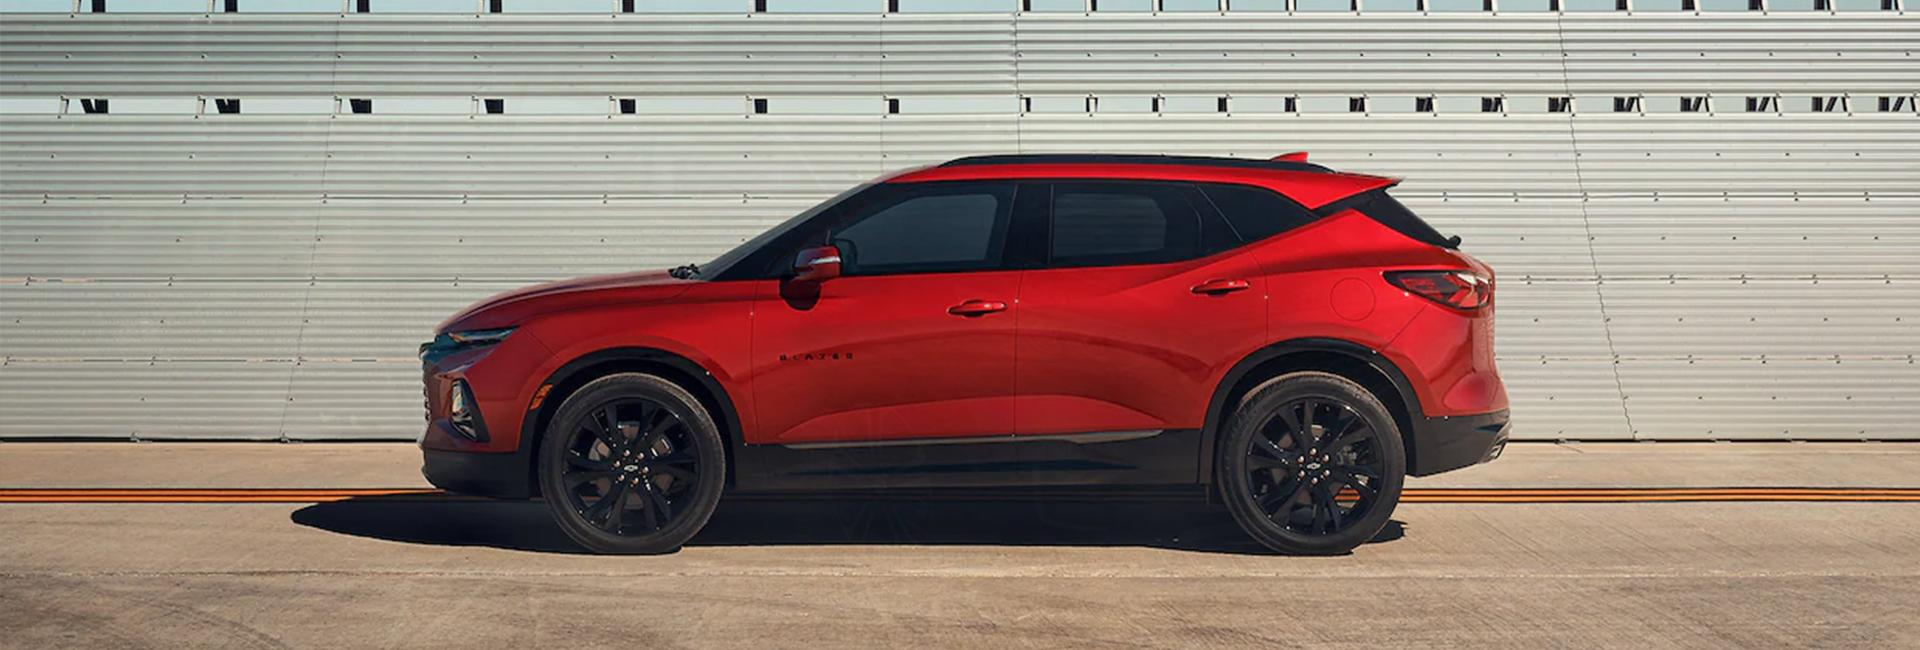 Side profile of a parked red Chevrolet Blazer